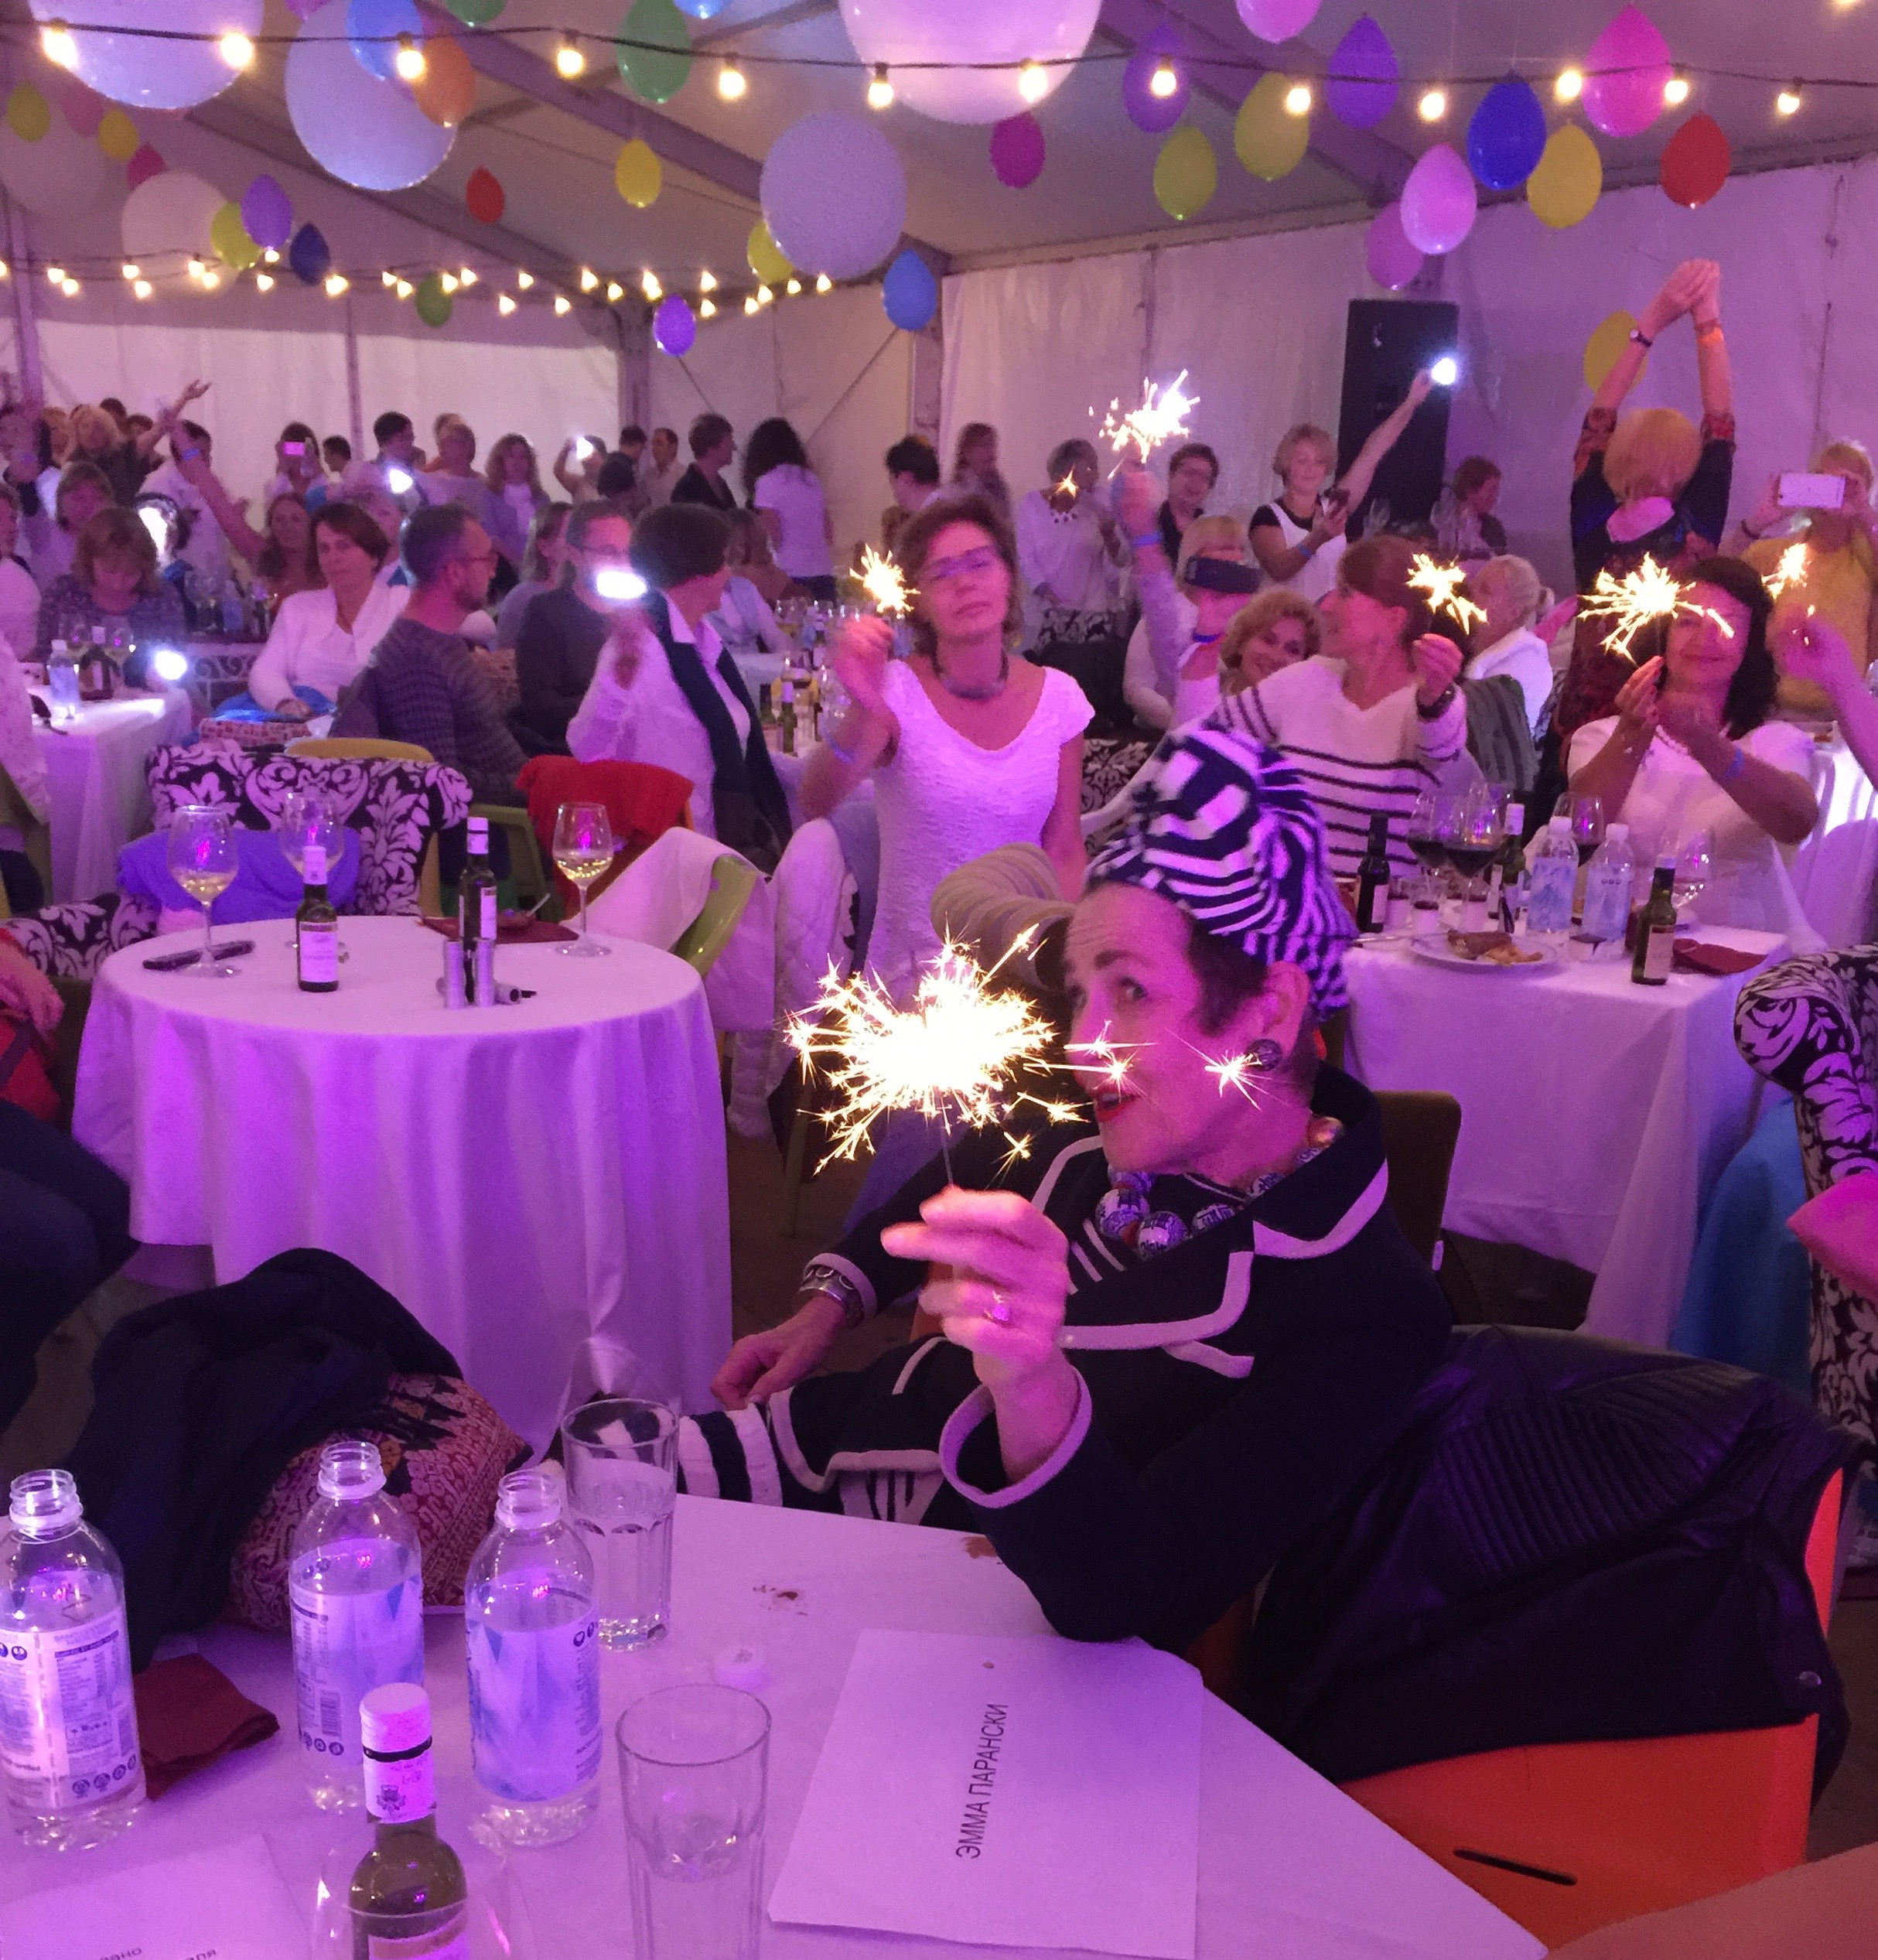 Closing night party at The Age of Happiness, Well Over 50, Festival.